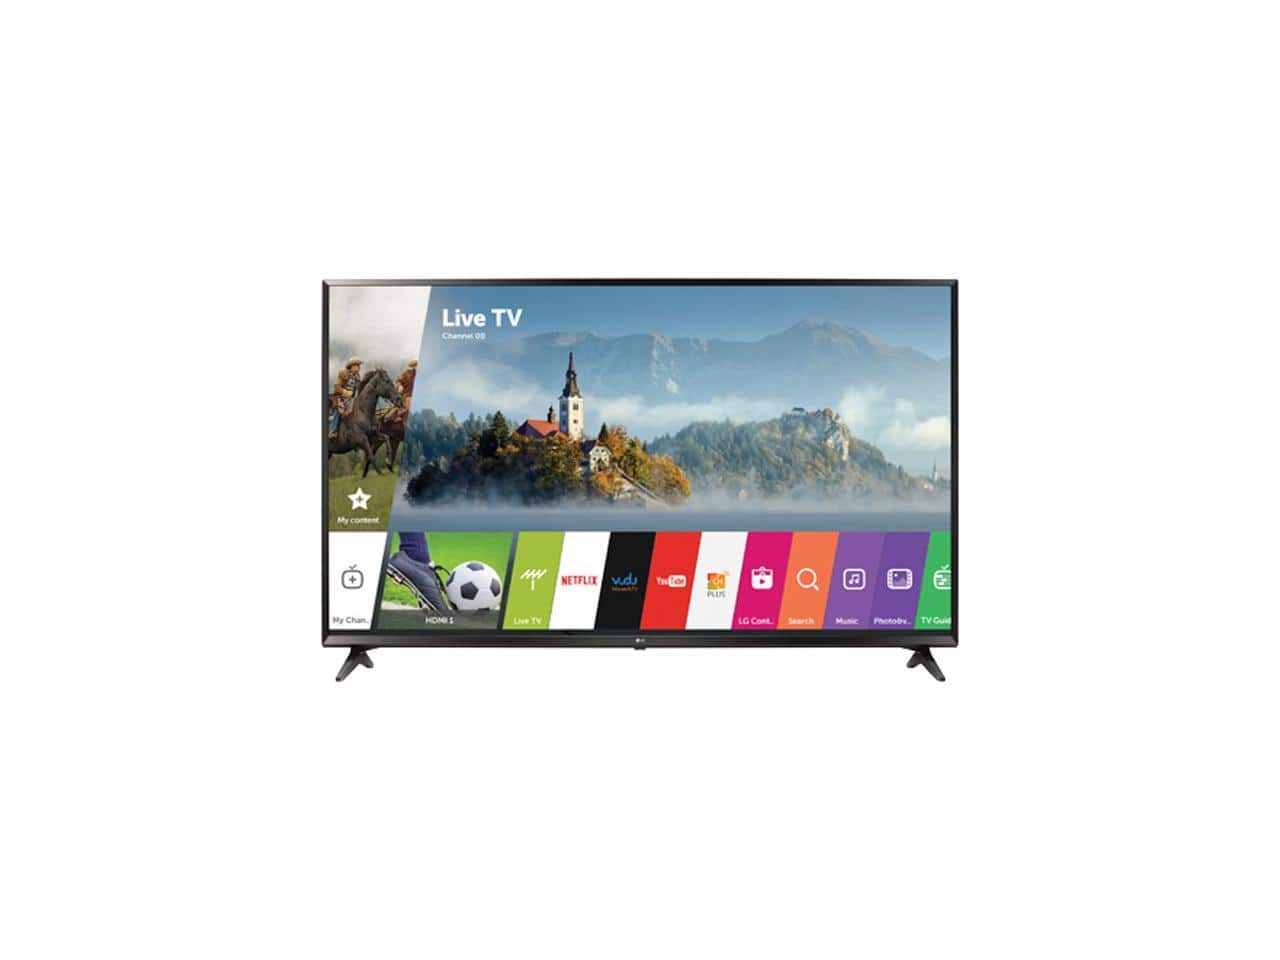 """49"""" LG 49UJ6300 @ NewEgg $329.99 after rebate/promo code + Free Super Saver Shipping (7 day deal)"""